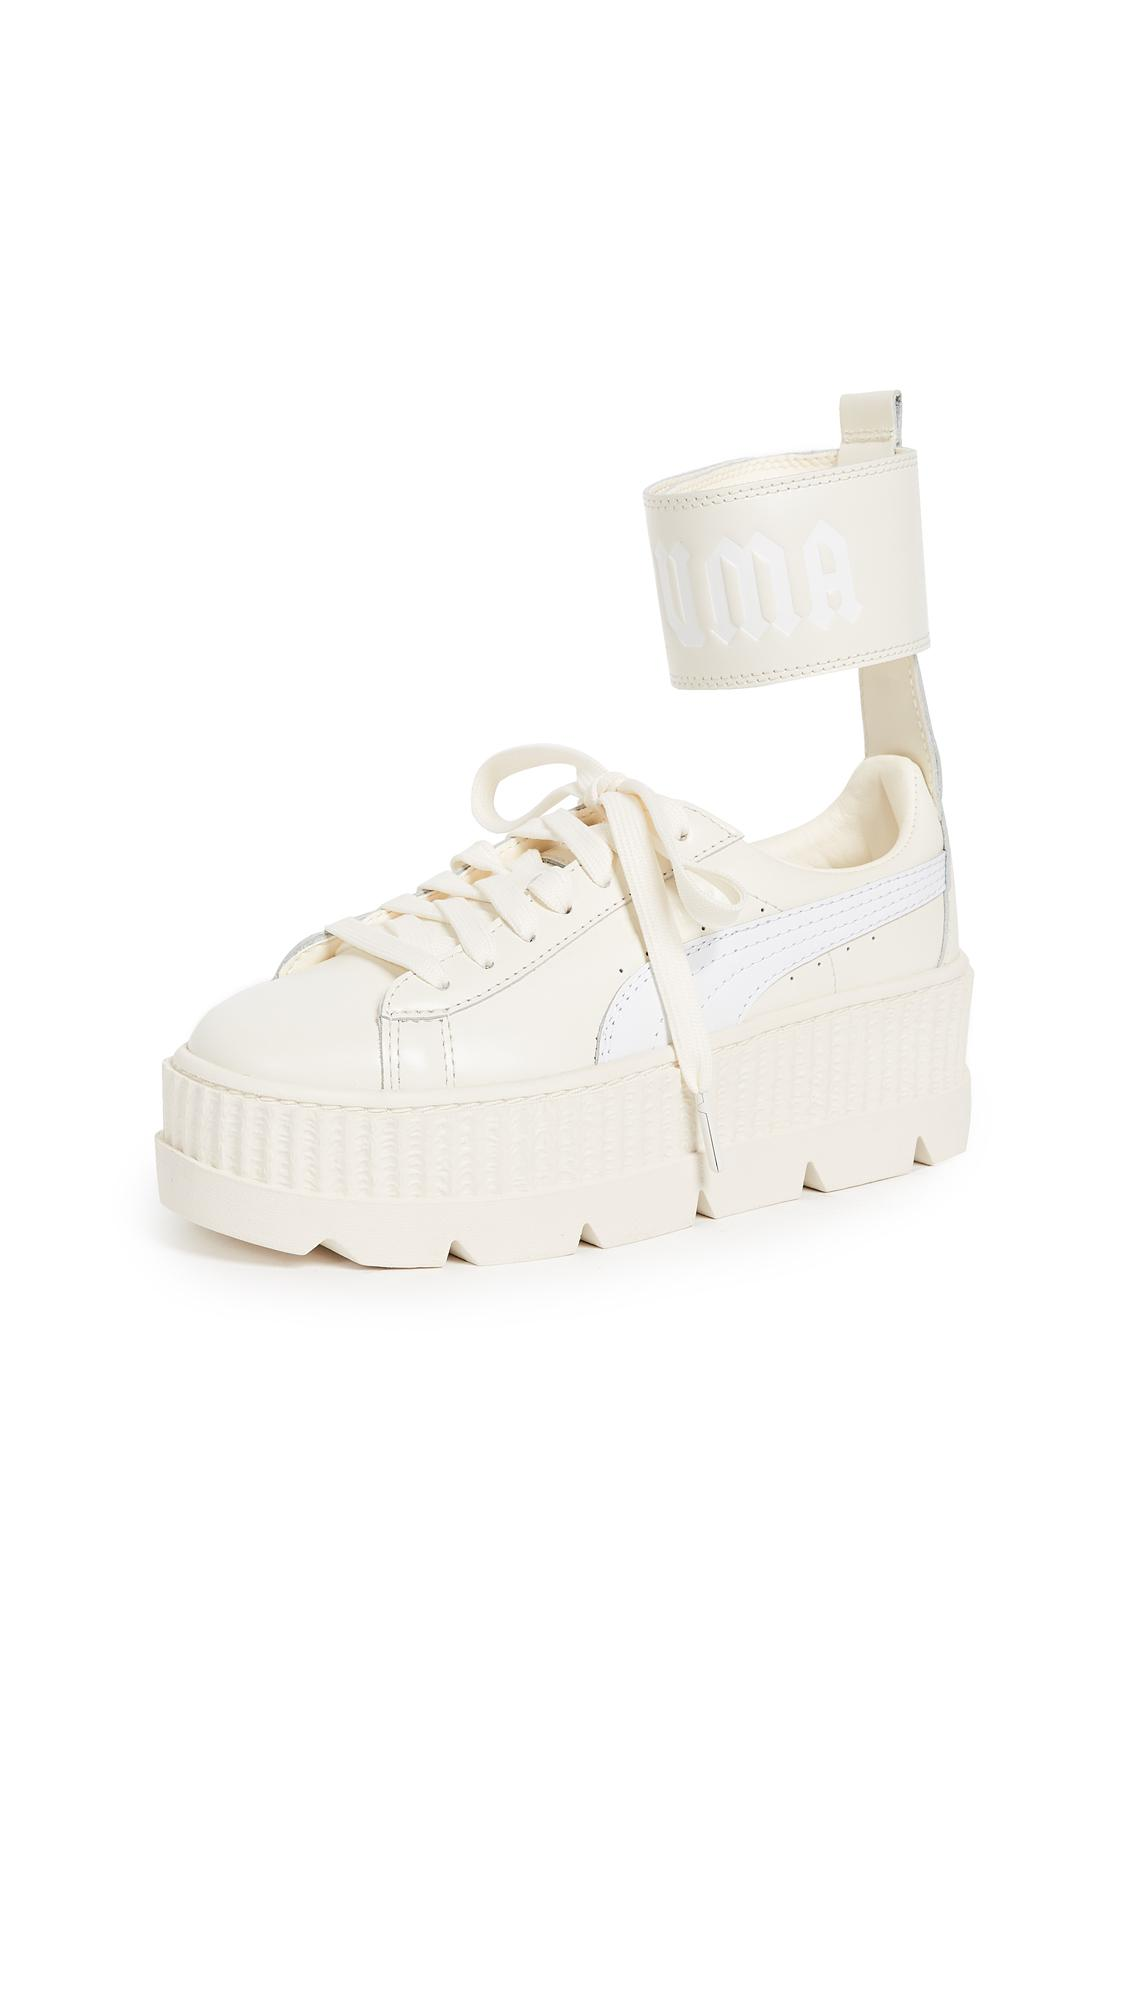 e31fd7584762 ... pretty cheap 4fbe9 7bf25 Lyst - Puma Fenty X Ankle Strap Sneakers in  White ...